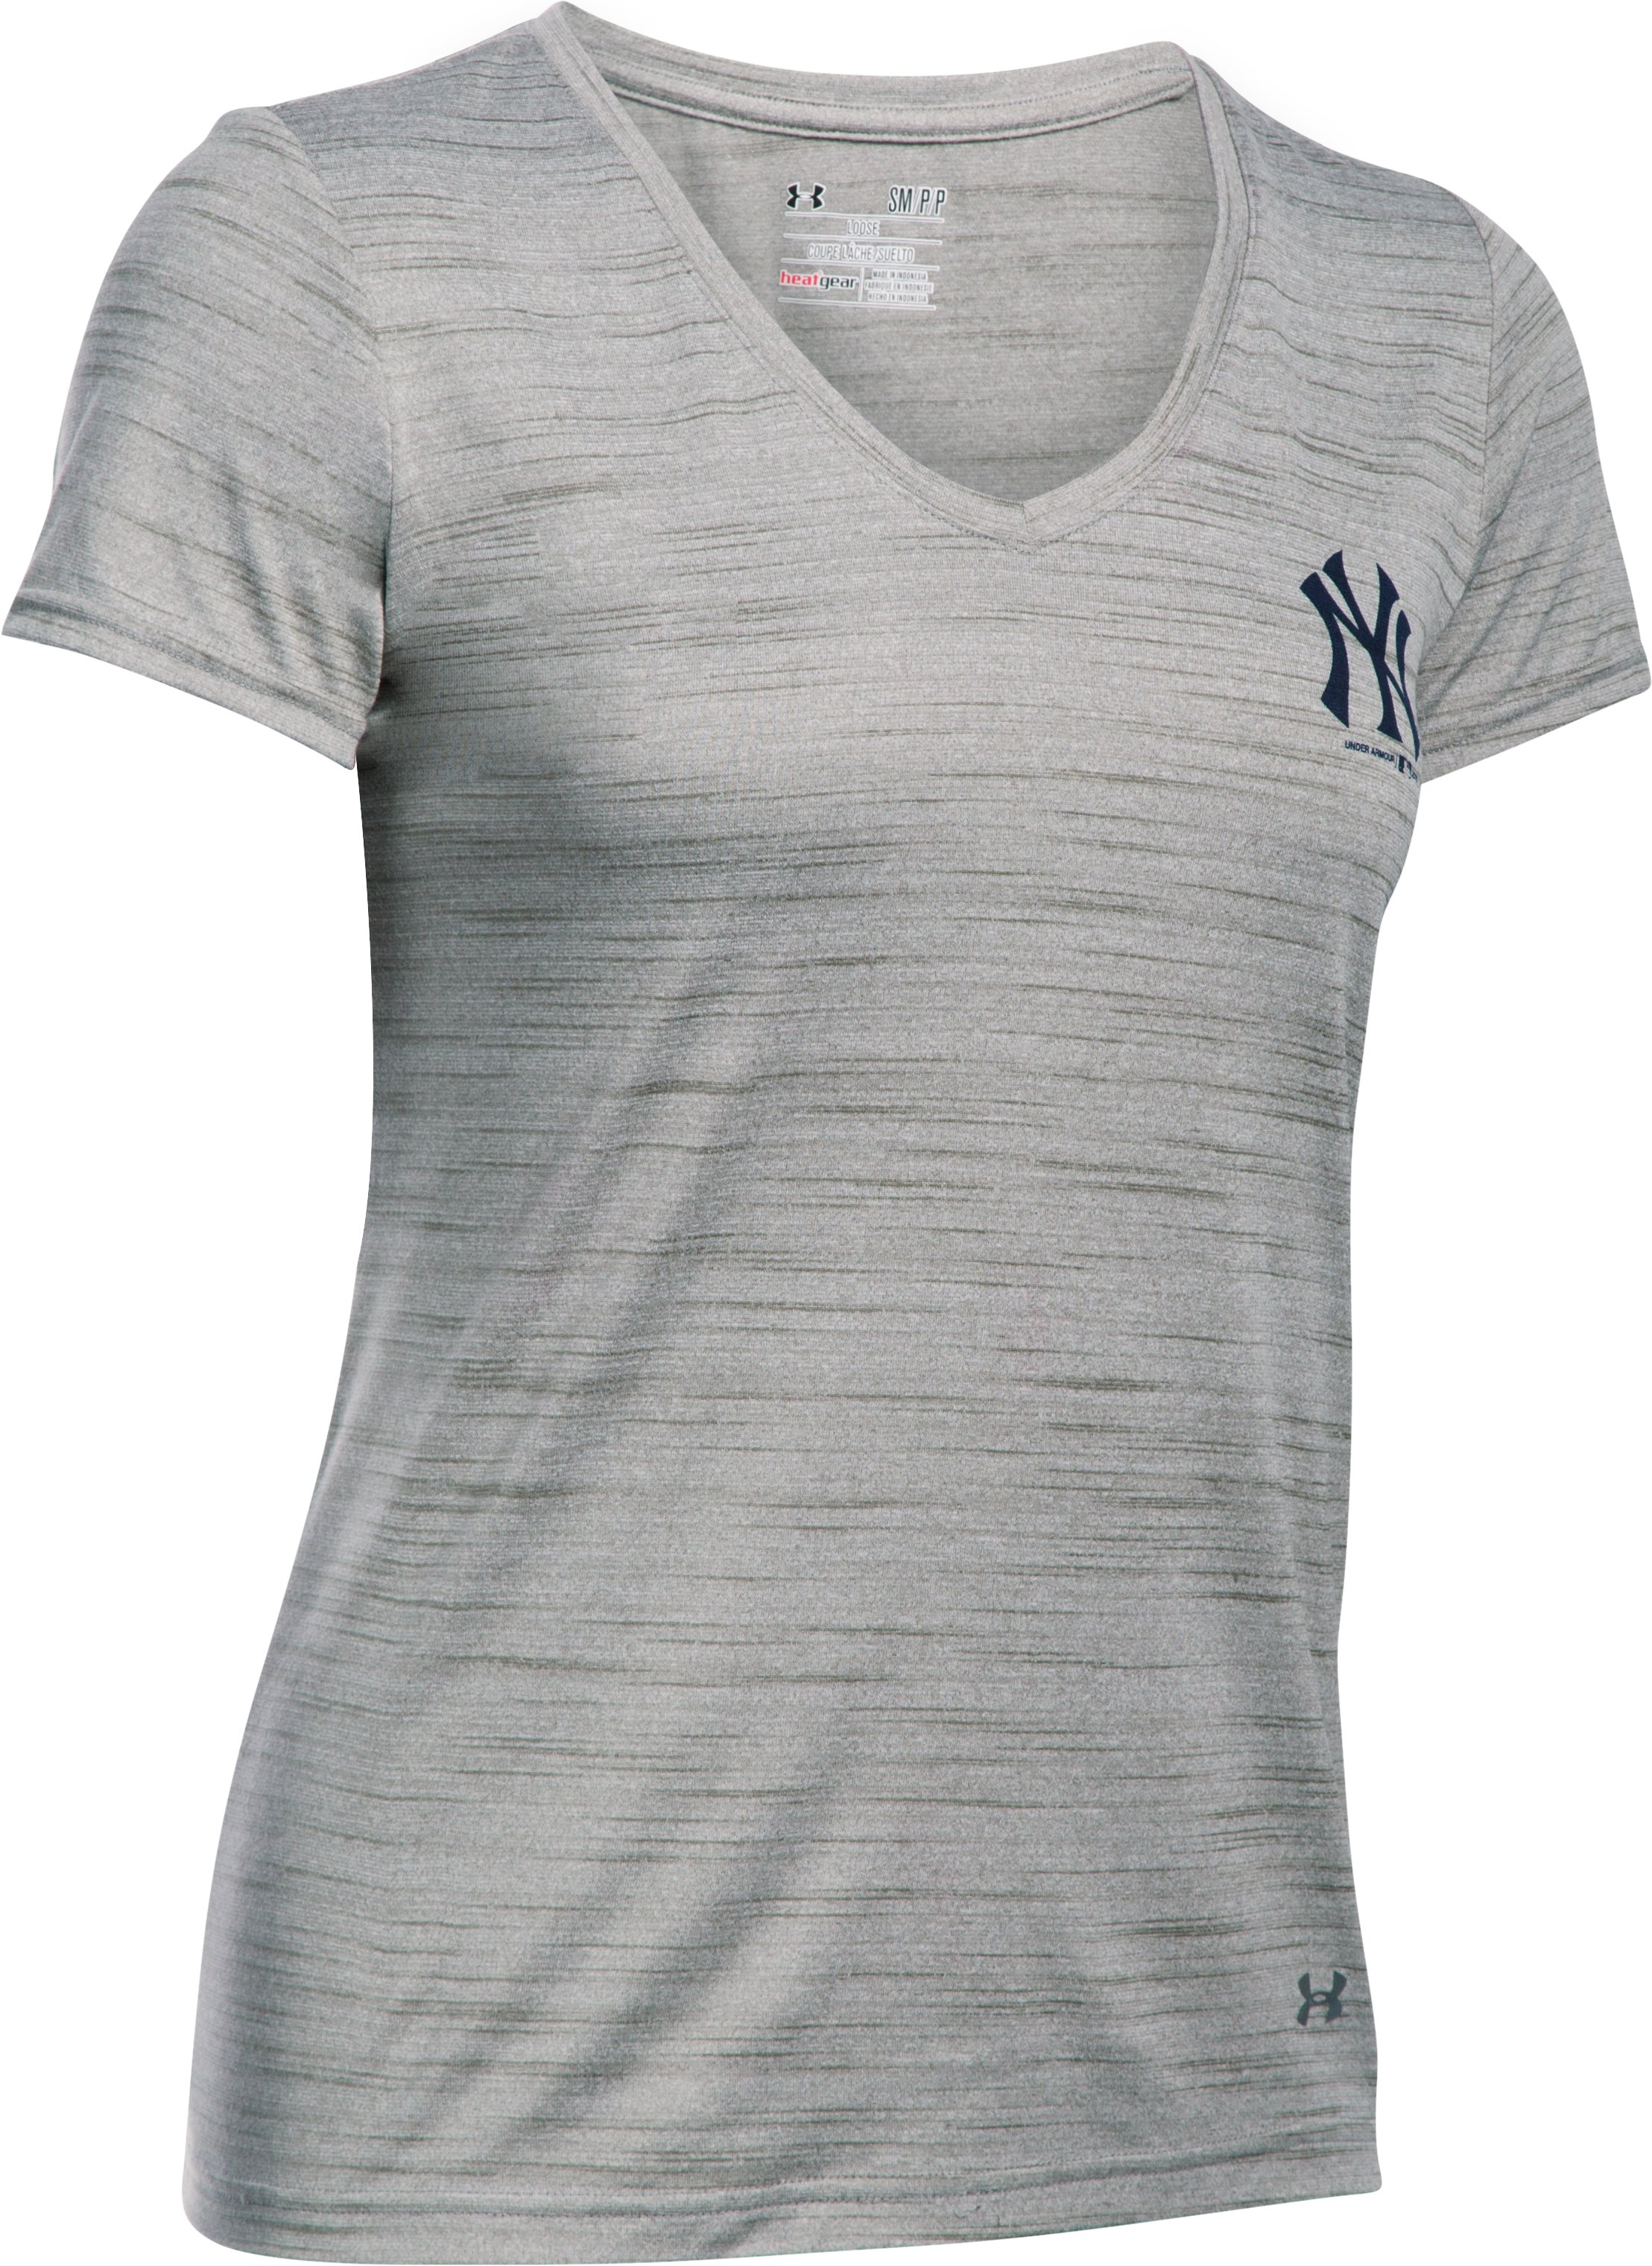 Women's New York Yankees UA Tech™ T-Shirt, True Gray Heather